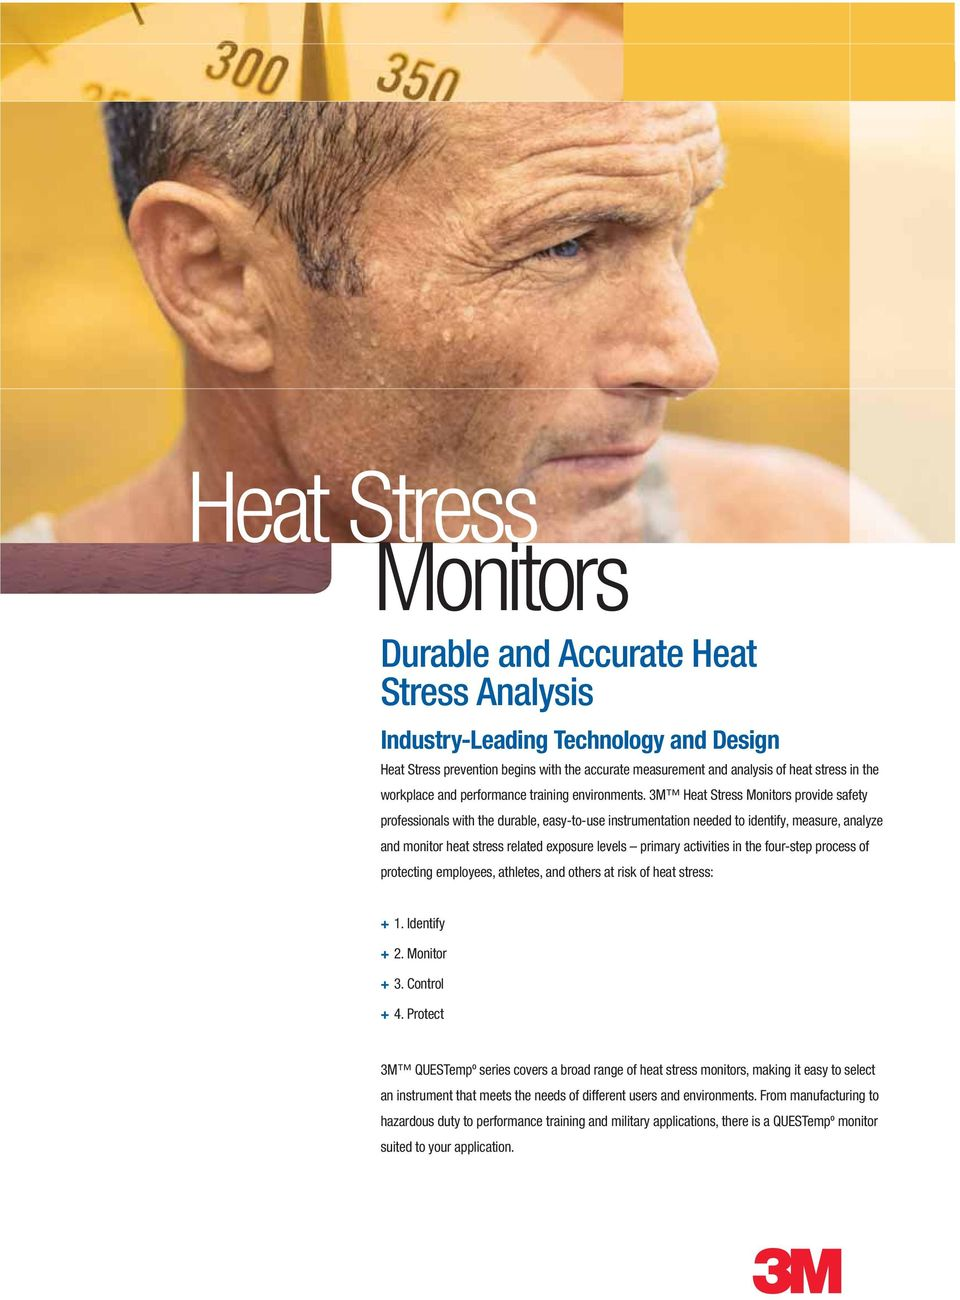 3M Heat Stress Monitors provide safety professionals with the durable, easy-to-use instrumentation needed to identify, measure, analyze and monitor heat stress related exposure levels primary